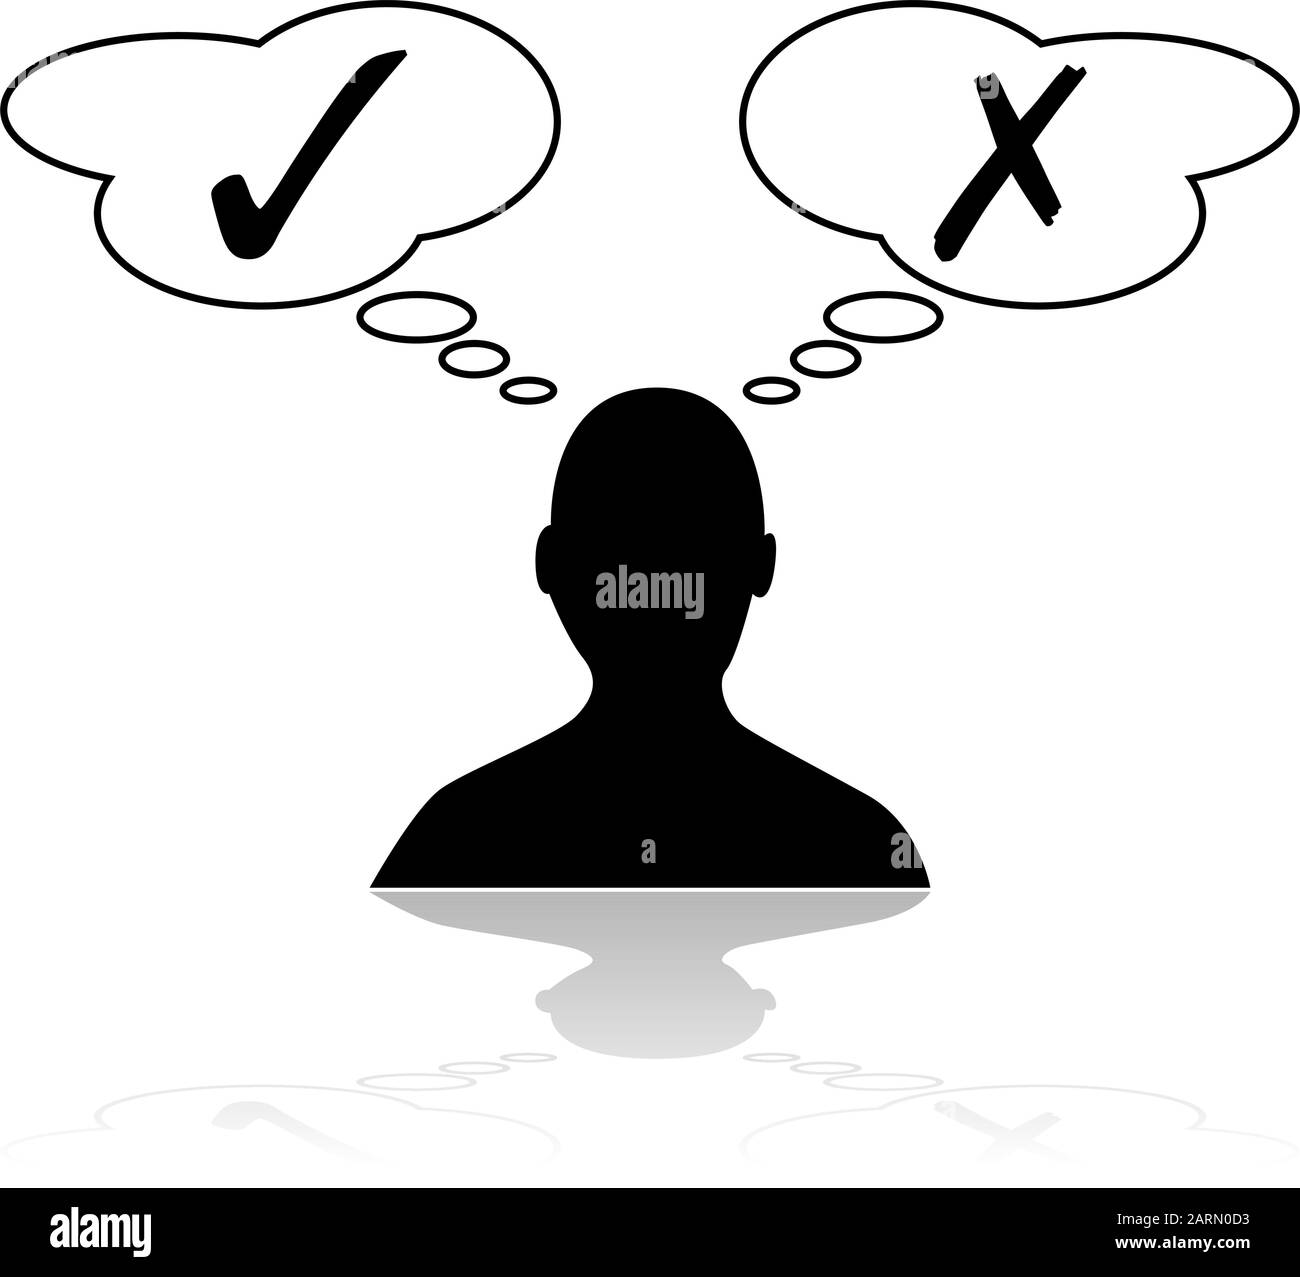 Concept Illustration Showing A Person Thinking About Different Options Before Making A Decision Stock Vector Image Art Alamy Download all photos and use them even for commercial projects. https www alamy com concept illustration showing a person thinking about different options before making a decision image341595439 html